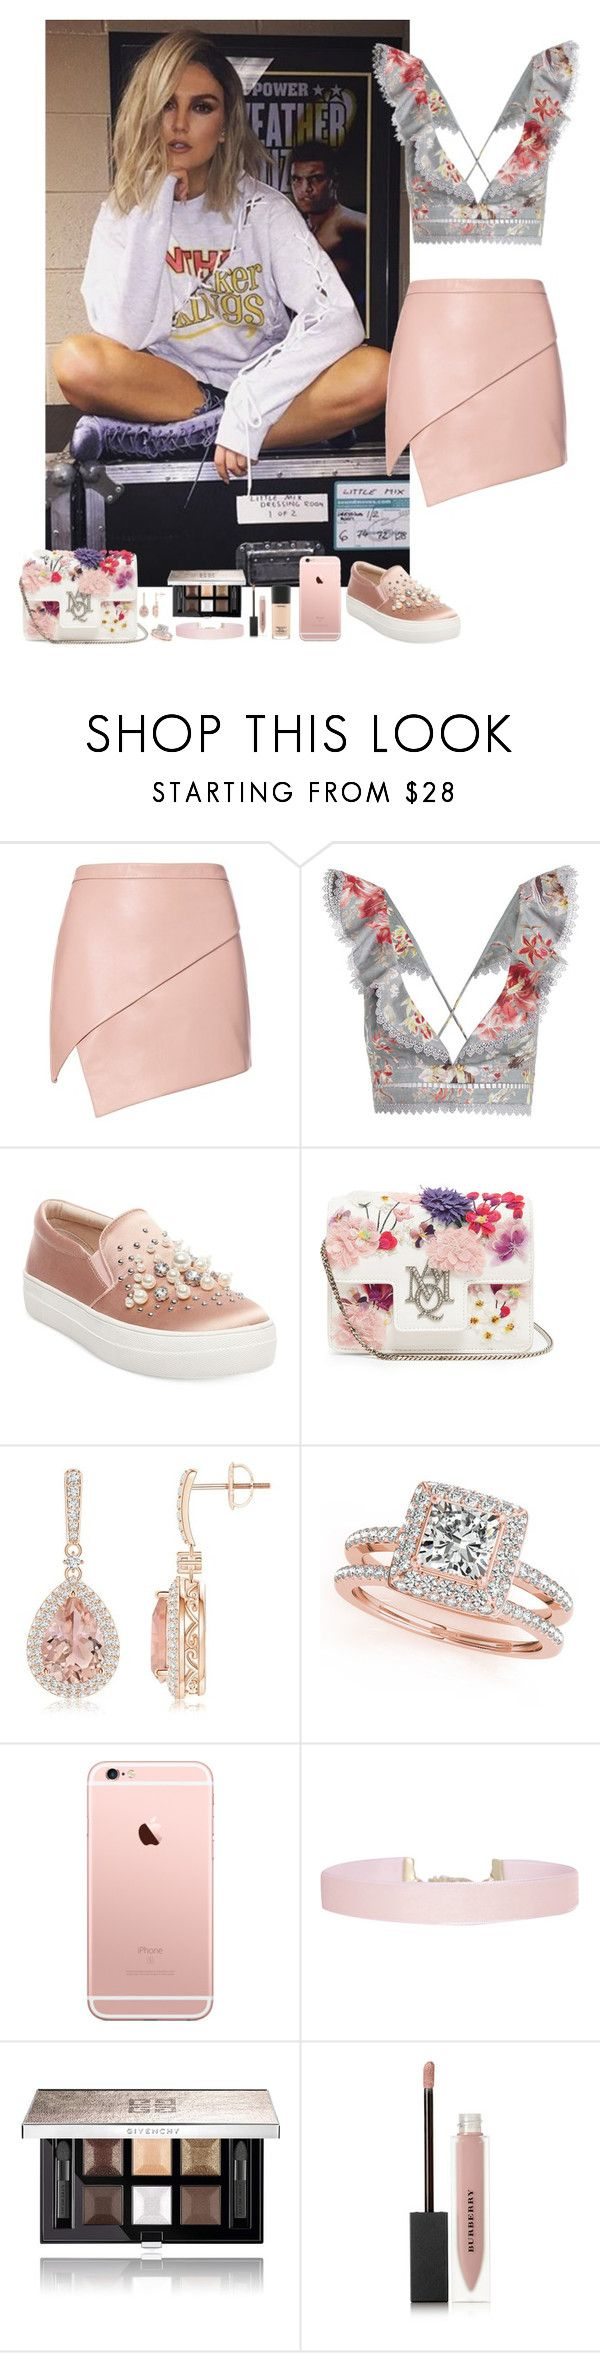 """""""Perrie Edwards, LM #48"""" by ambere3love34 ❤ liked on Polyvore featuring Michelle Mason, Zimmermann, Steve Madden, Alexander McQueen, Allurez, Humble Chic, Givenchy, Burberry and MAC Cosmetics"""